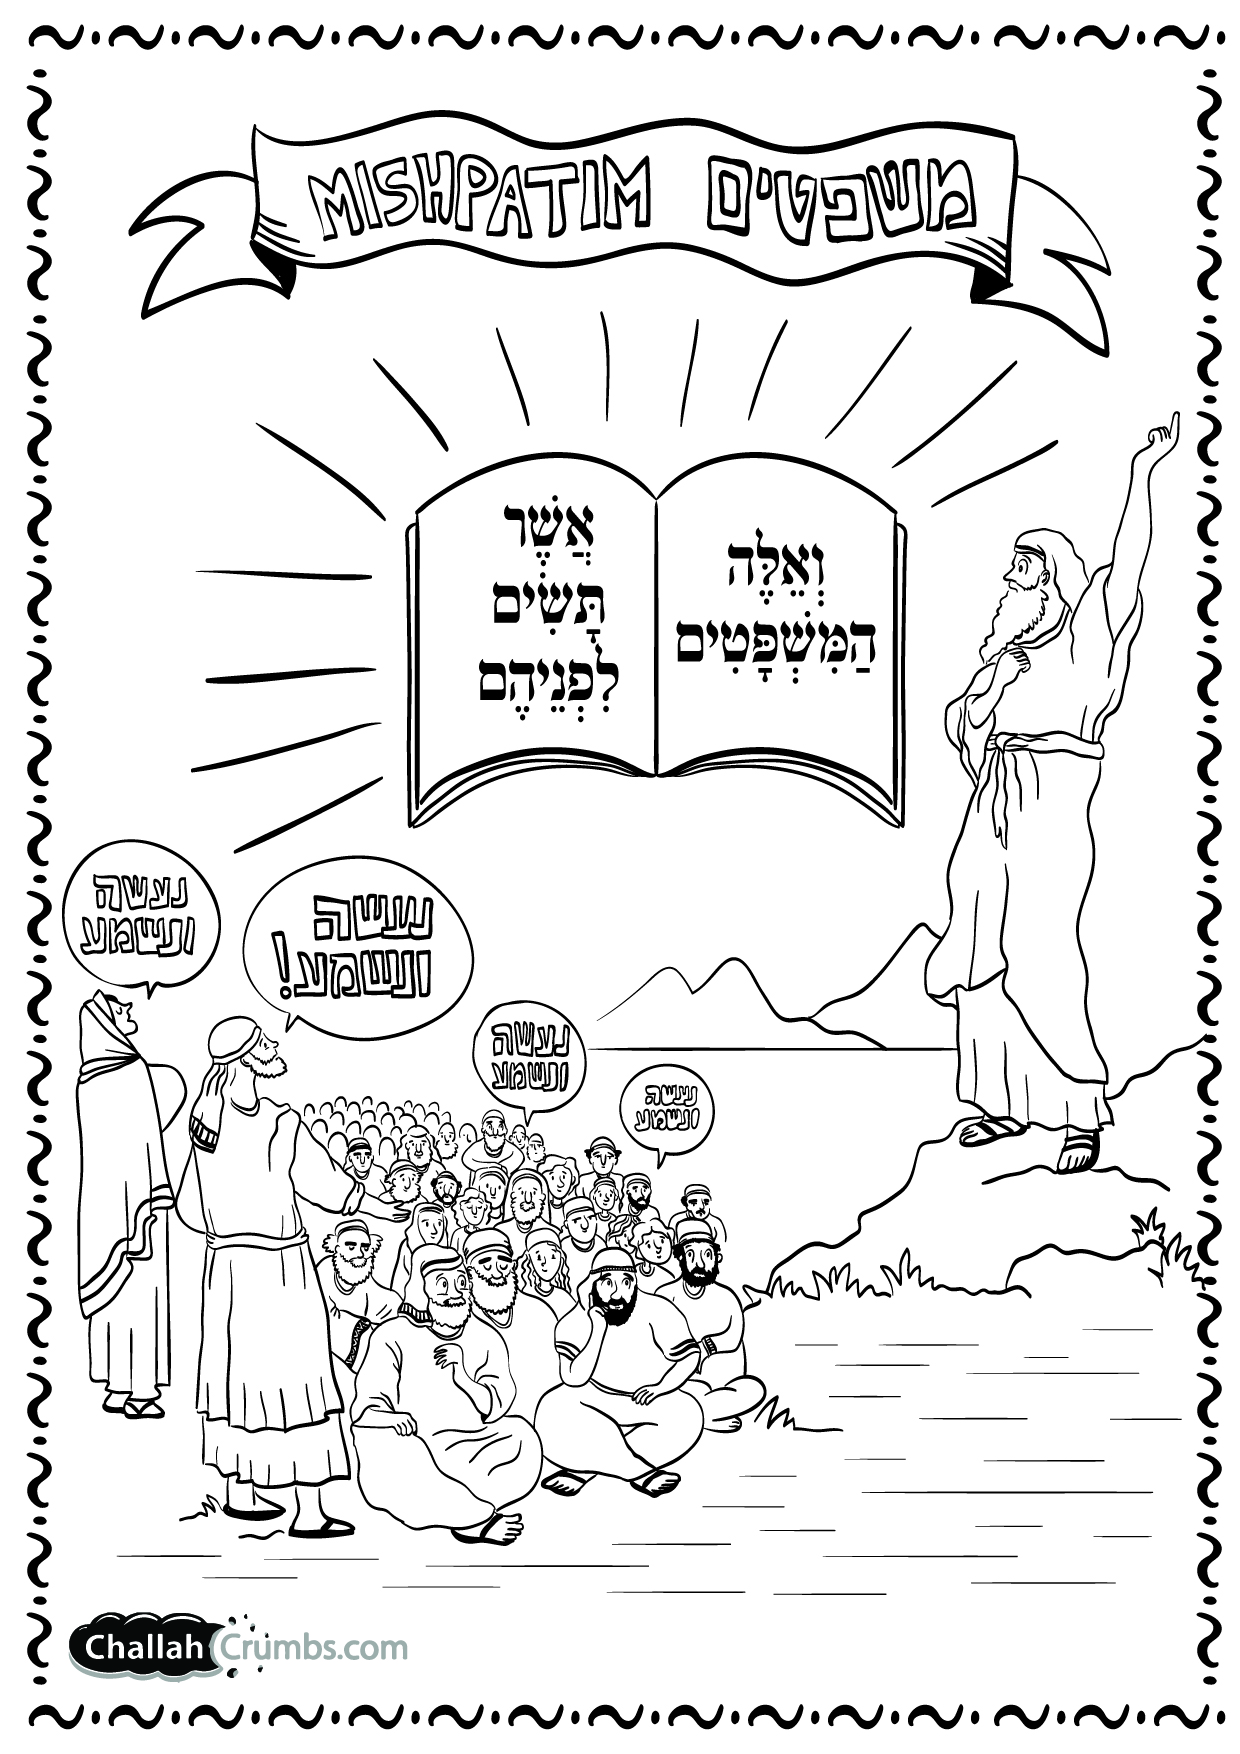 Pin challah colouring pages ajilbabcom portal on pinterest for Parshat vayera coloring pages